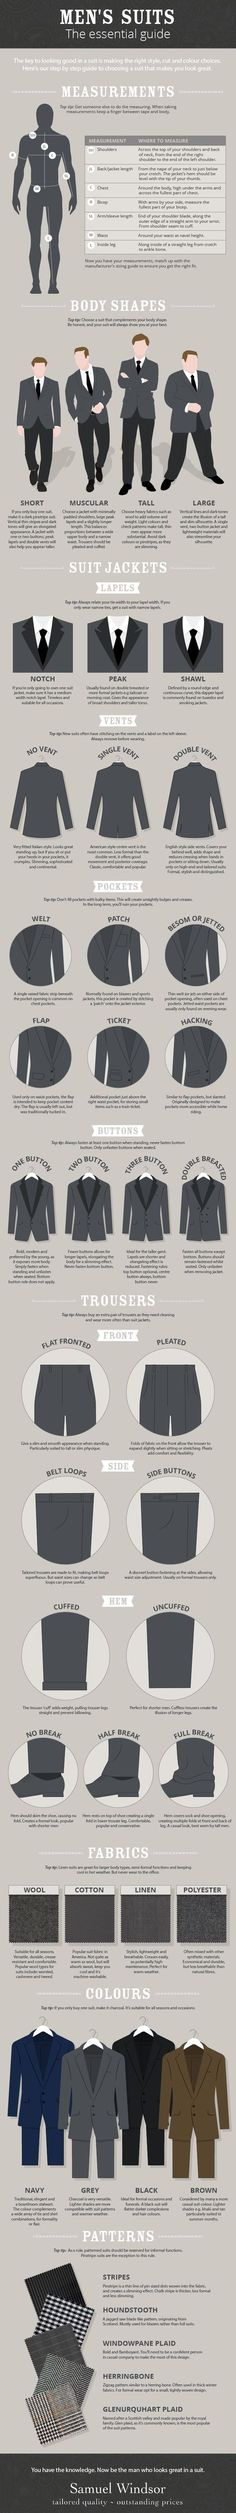 Infographic: The Essential Guide To Men's Suits - DesignTAXI.com